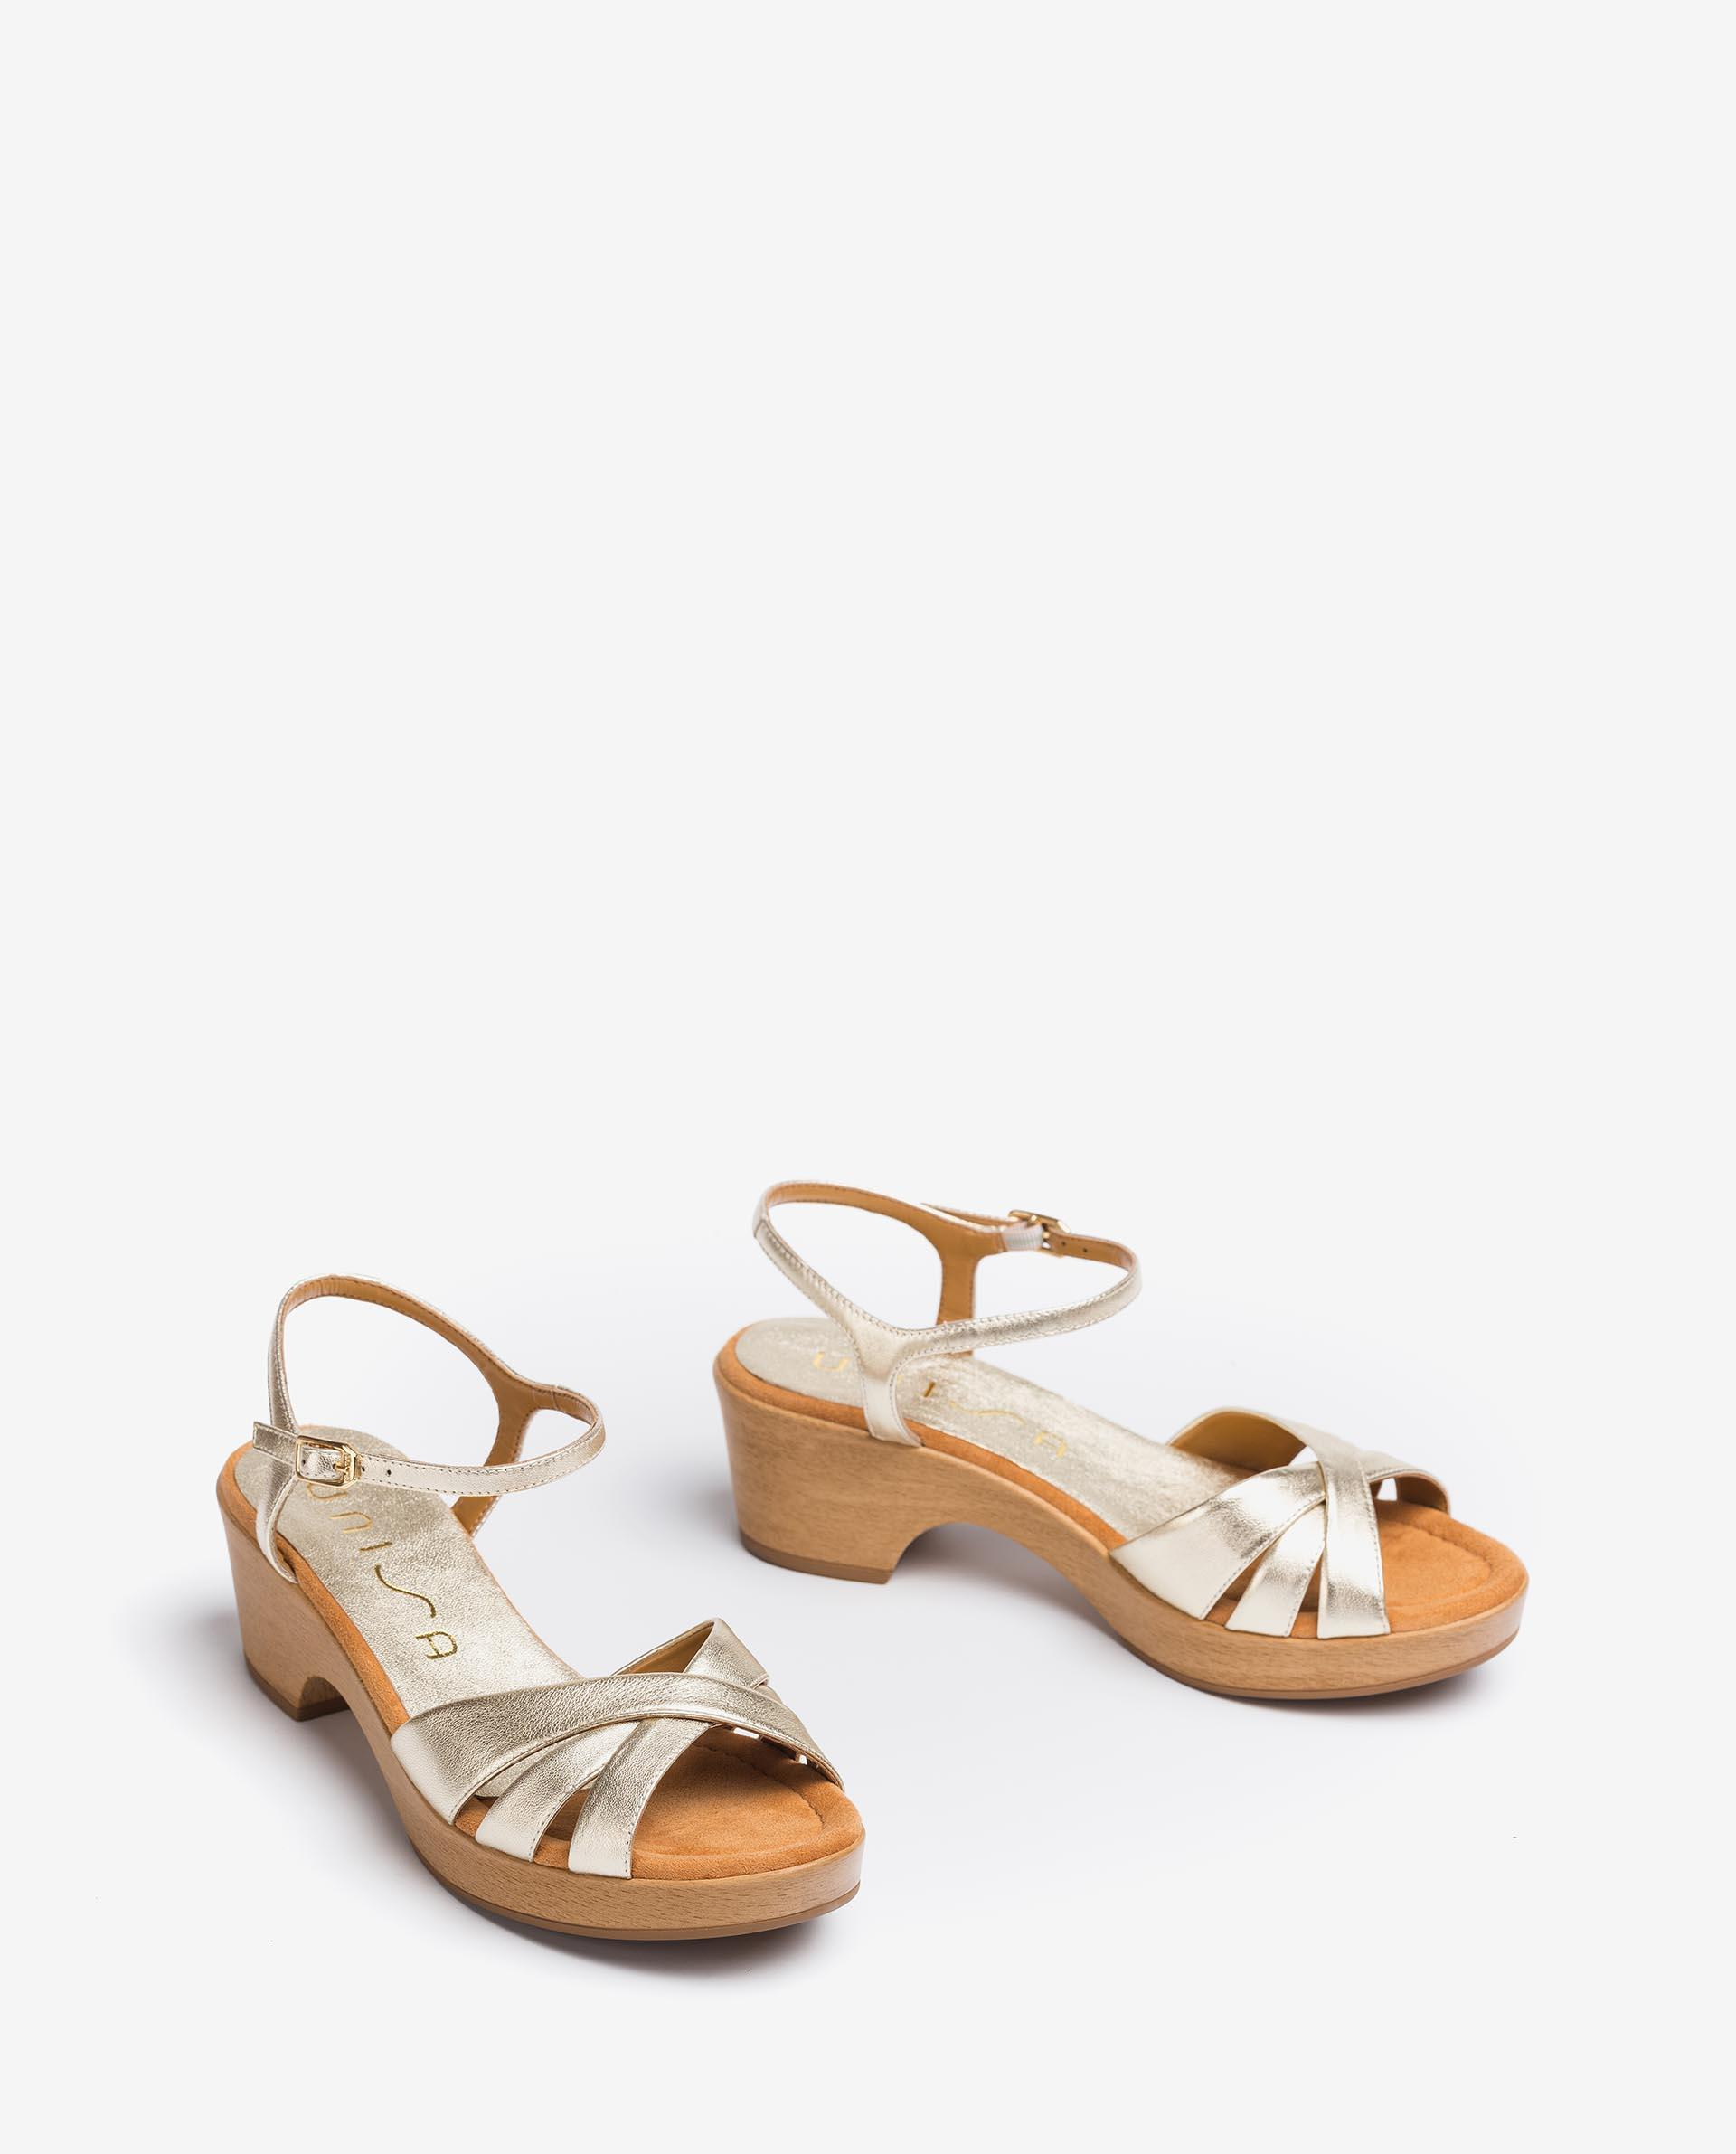 UNISA Metal effect leather strappy sandals INQUI_LMT 2